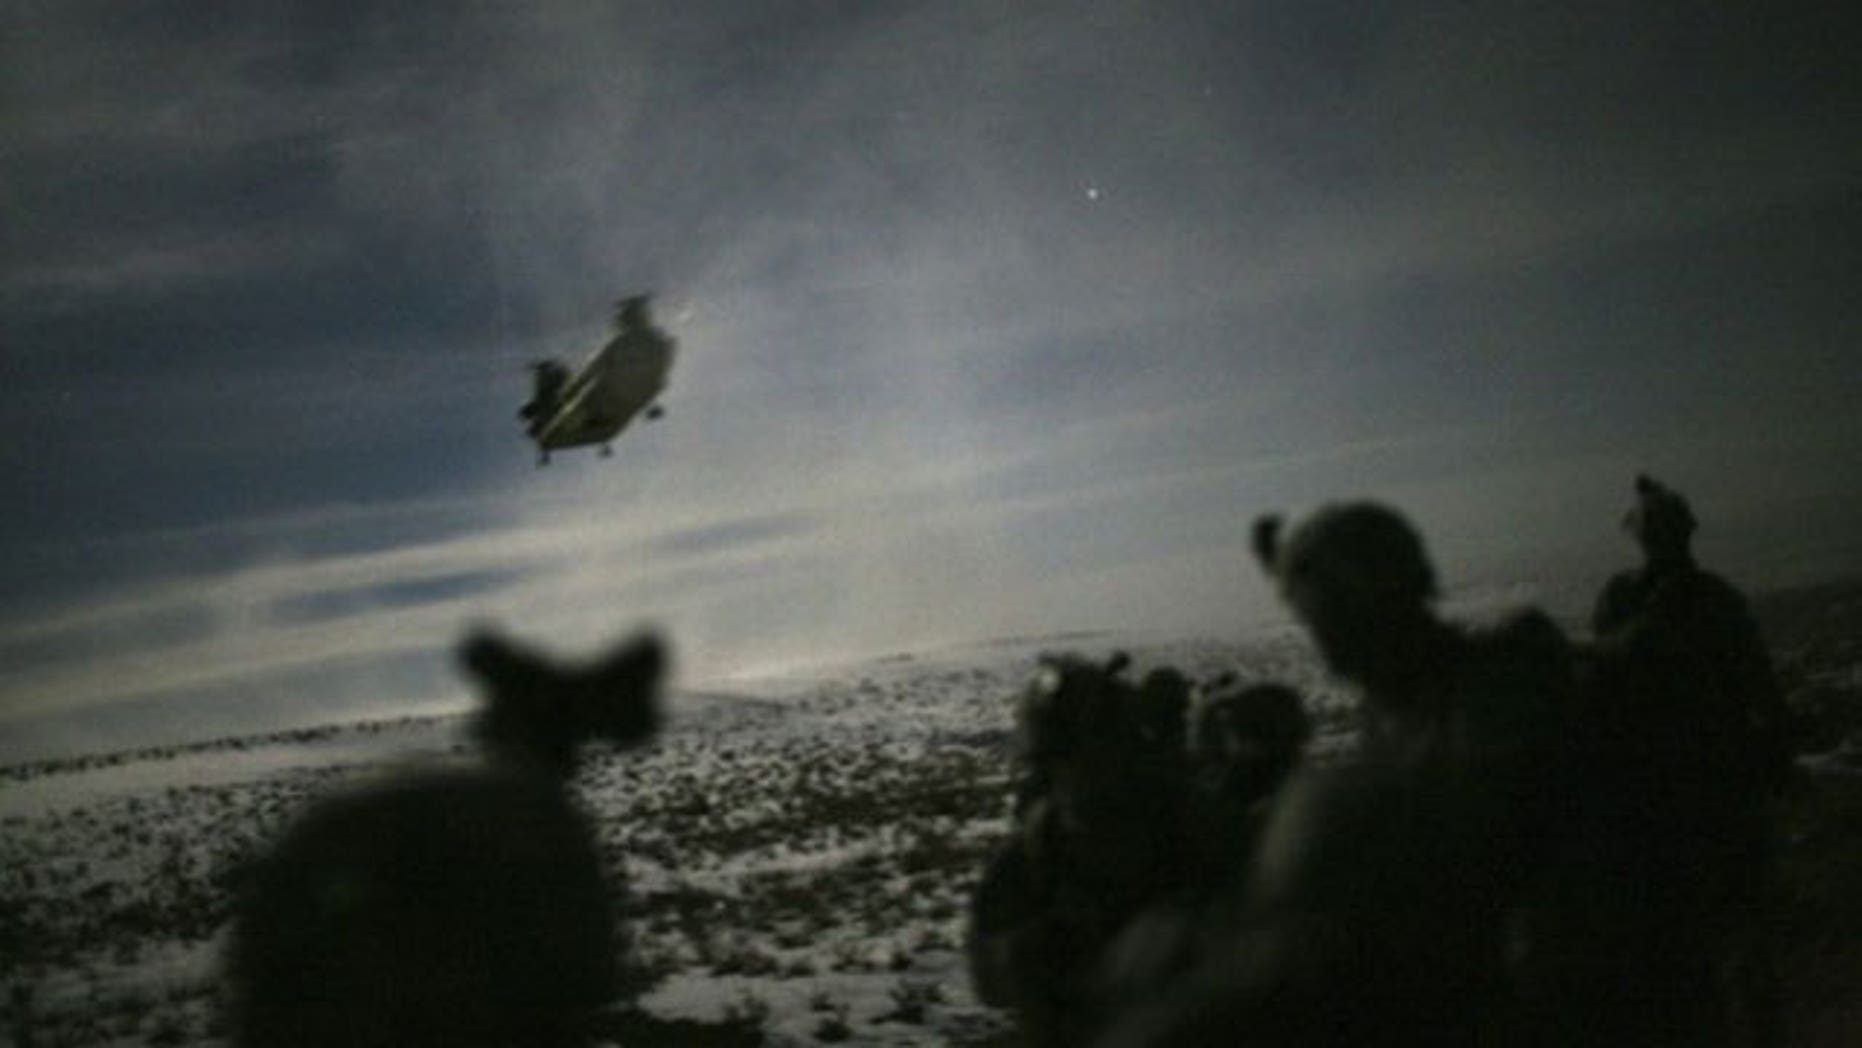 February 21, 2011: A Chinook helicopter lands to pick up U.S. soldiers of the 101st Airborne Division following a night raid in Yahya Khel, Paktika province.